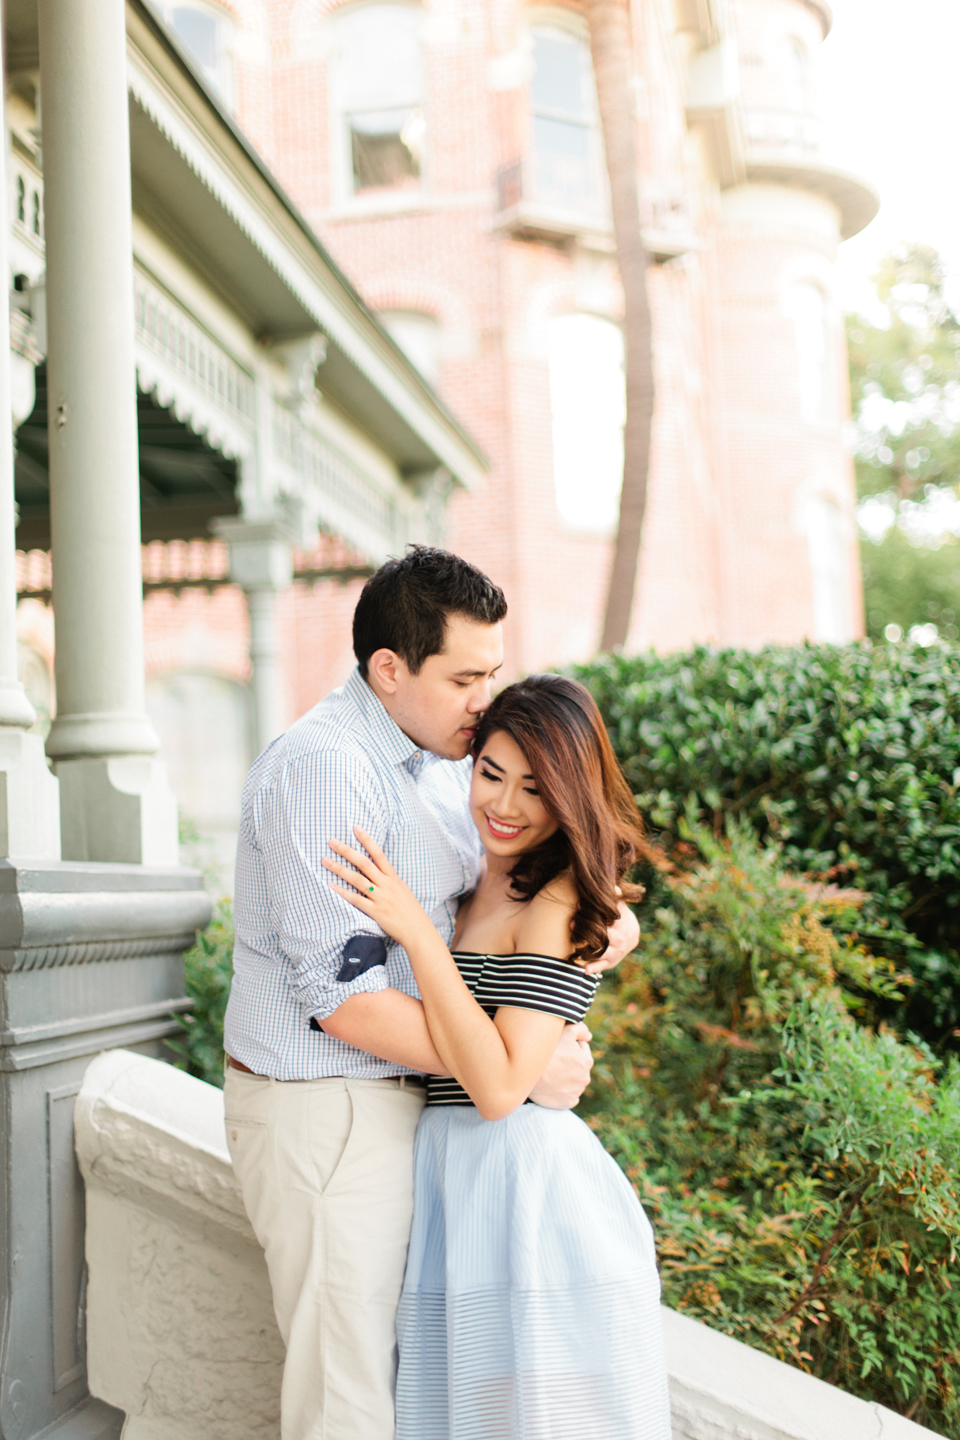 Image of engagement portraits on the steps of the Henry B Plant museum in Tampa, Florida.  The couple is in a romantic embrace.